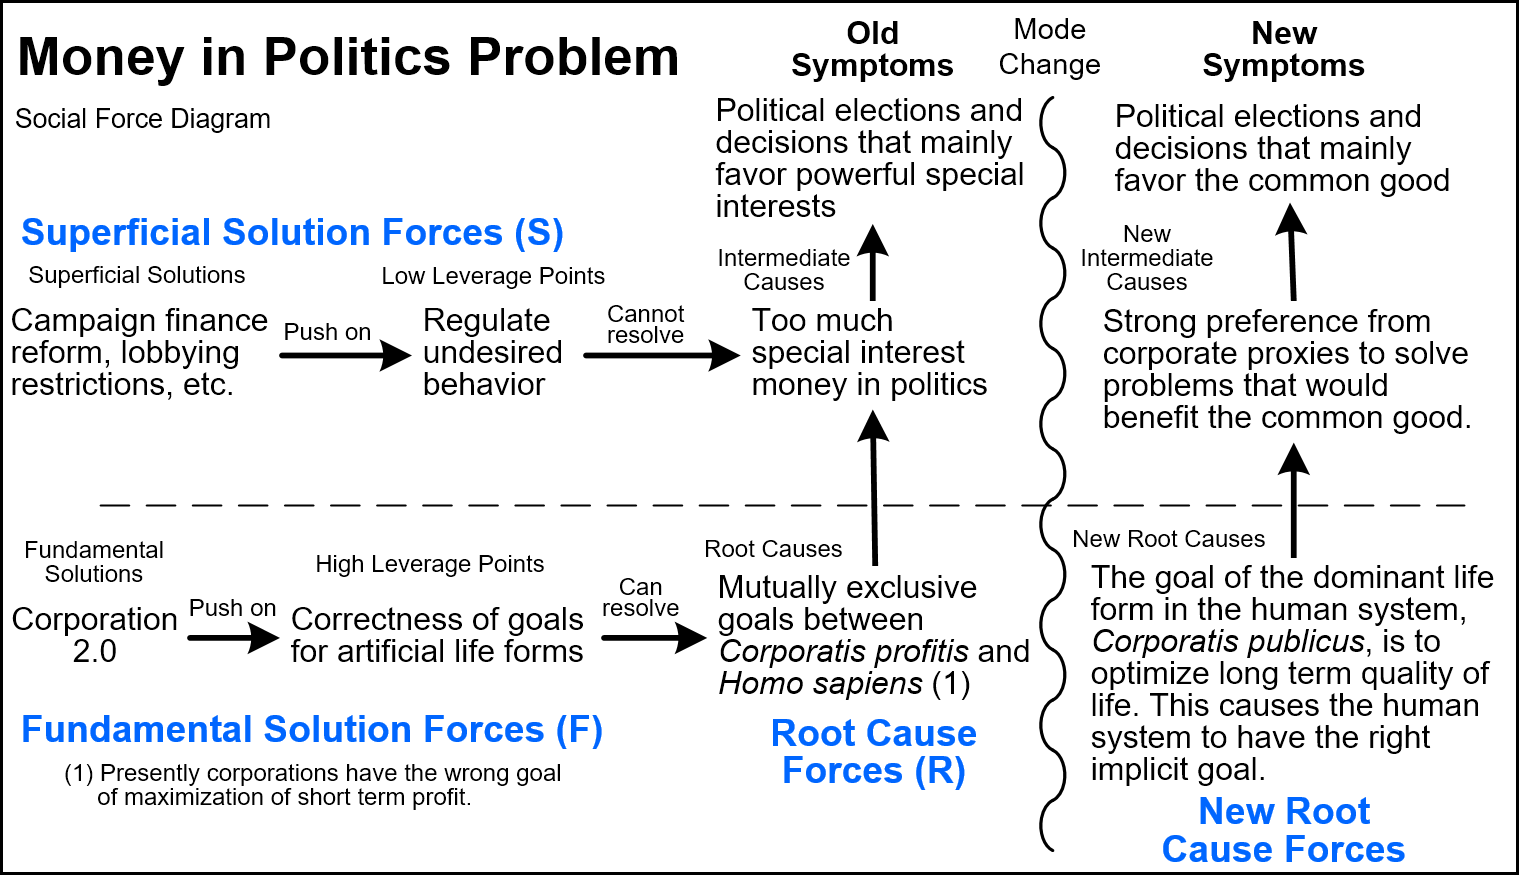 Social Force Diagrams - Tool/Concept/Definition